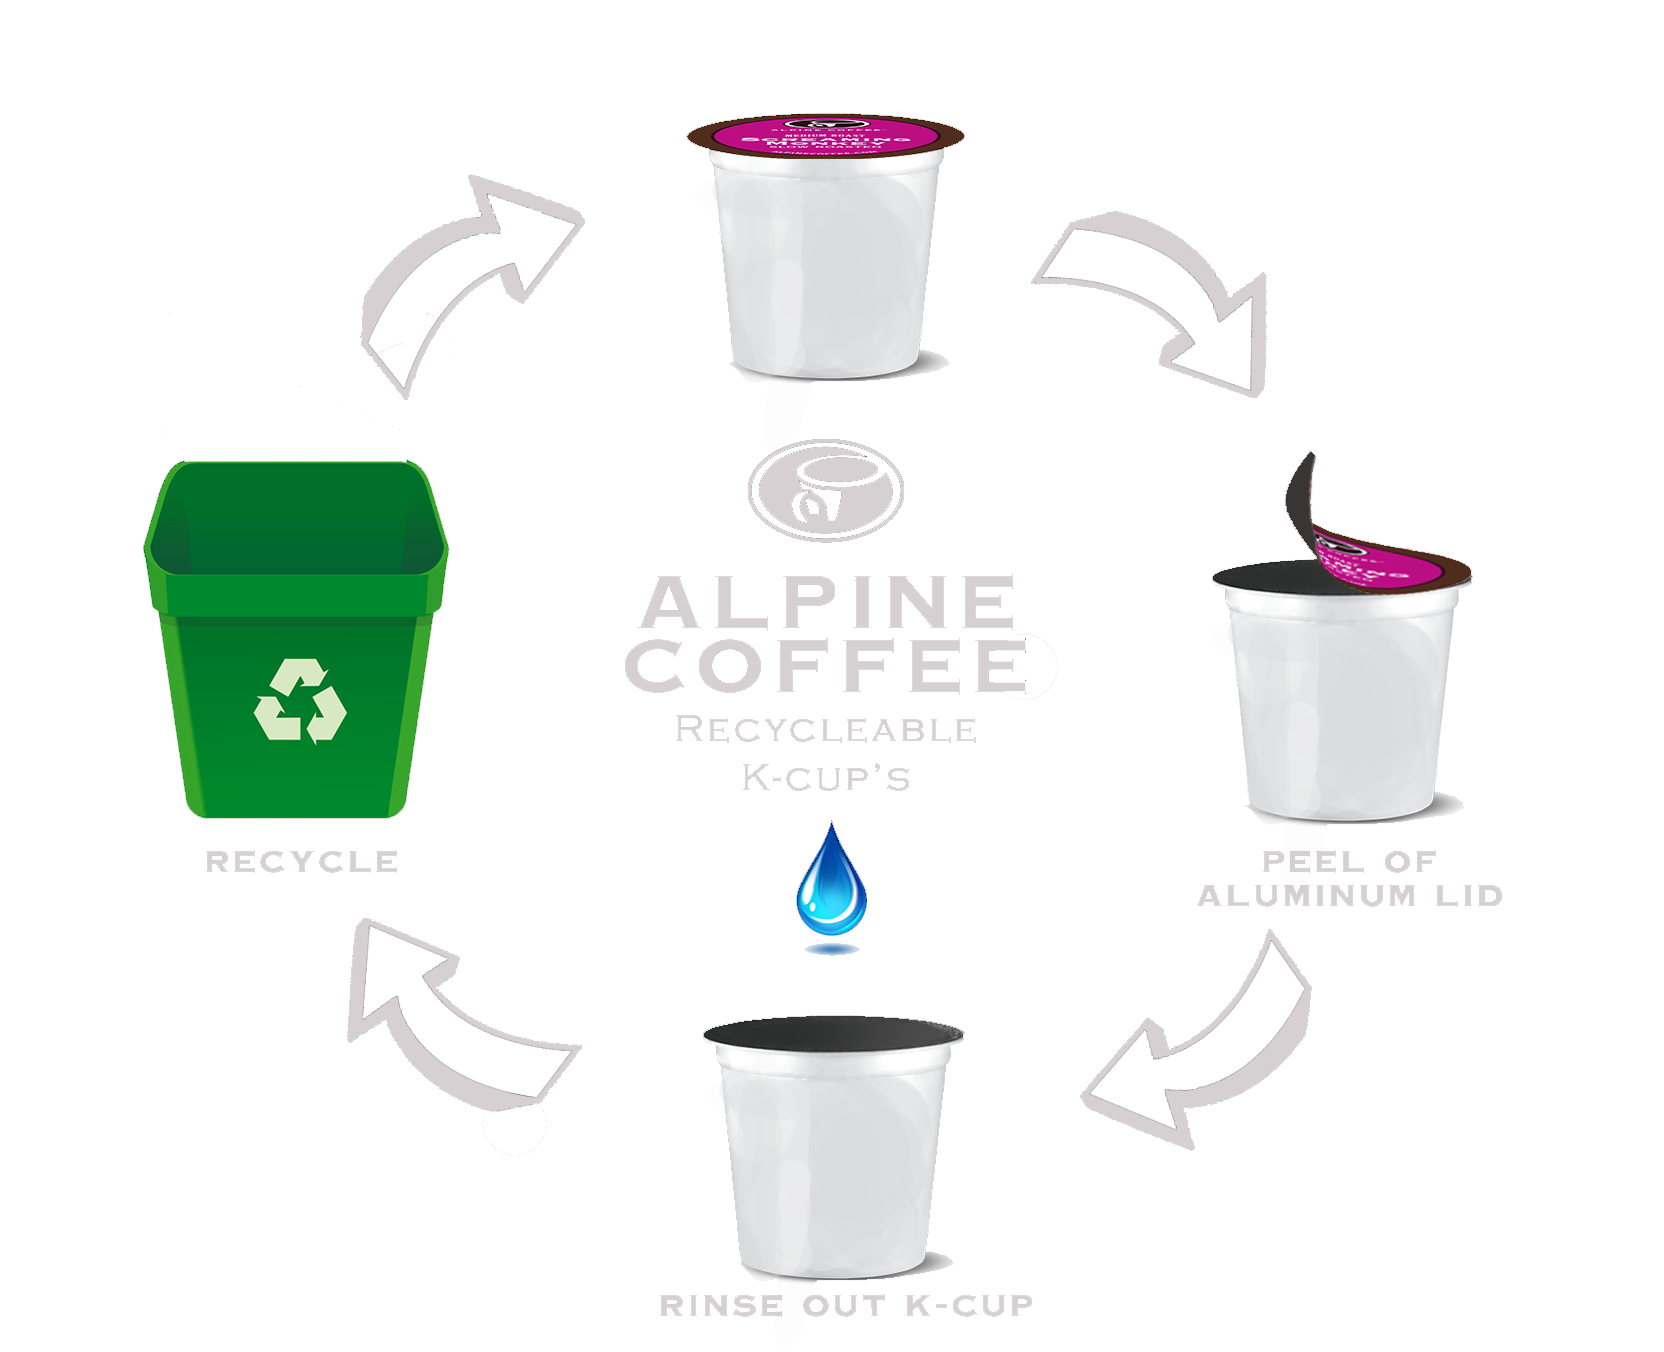 100% Recyclable - Did you know the amount of K-Cups that have been trashed in landfills could wrap around the world more than 10 times? The K-Cups that don't get recycled will take thousands of years to decompose in a landfill and will contribute to our growing problem of plastic pollution.One thing that we value here at Alpine is our planet. We do our best to give back to the environment every chance that we get. That's why we designed every single one of our k-Cups to be 100% recyclable. In just three easy steps you can join us in the mission to make our planet healthier. One K-Cup at a time.